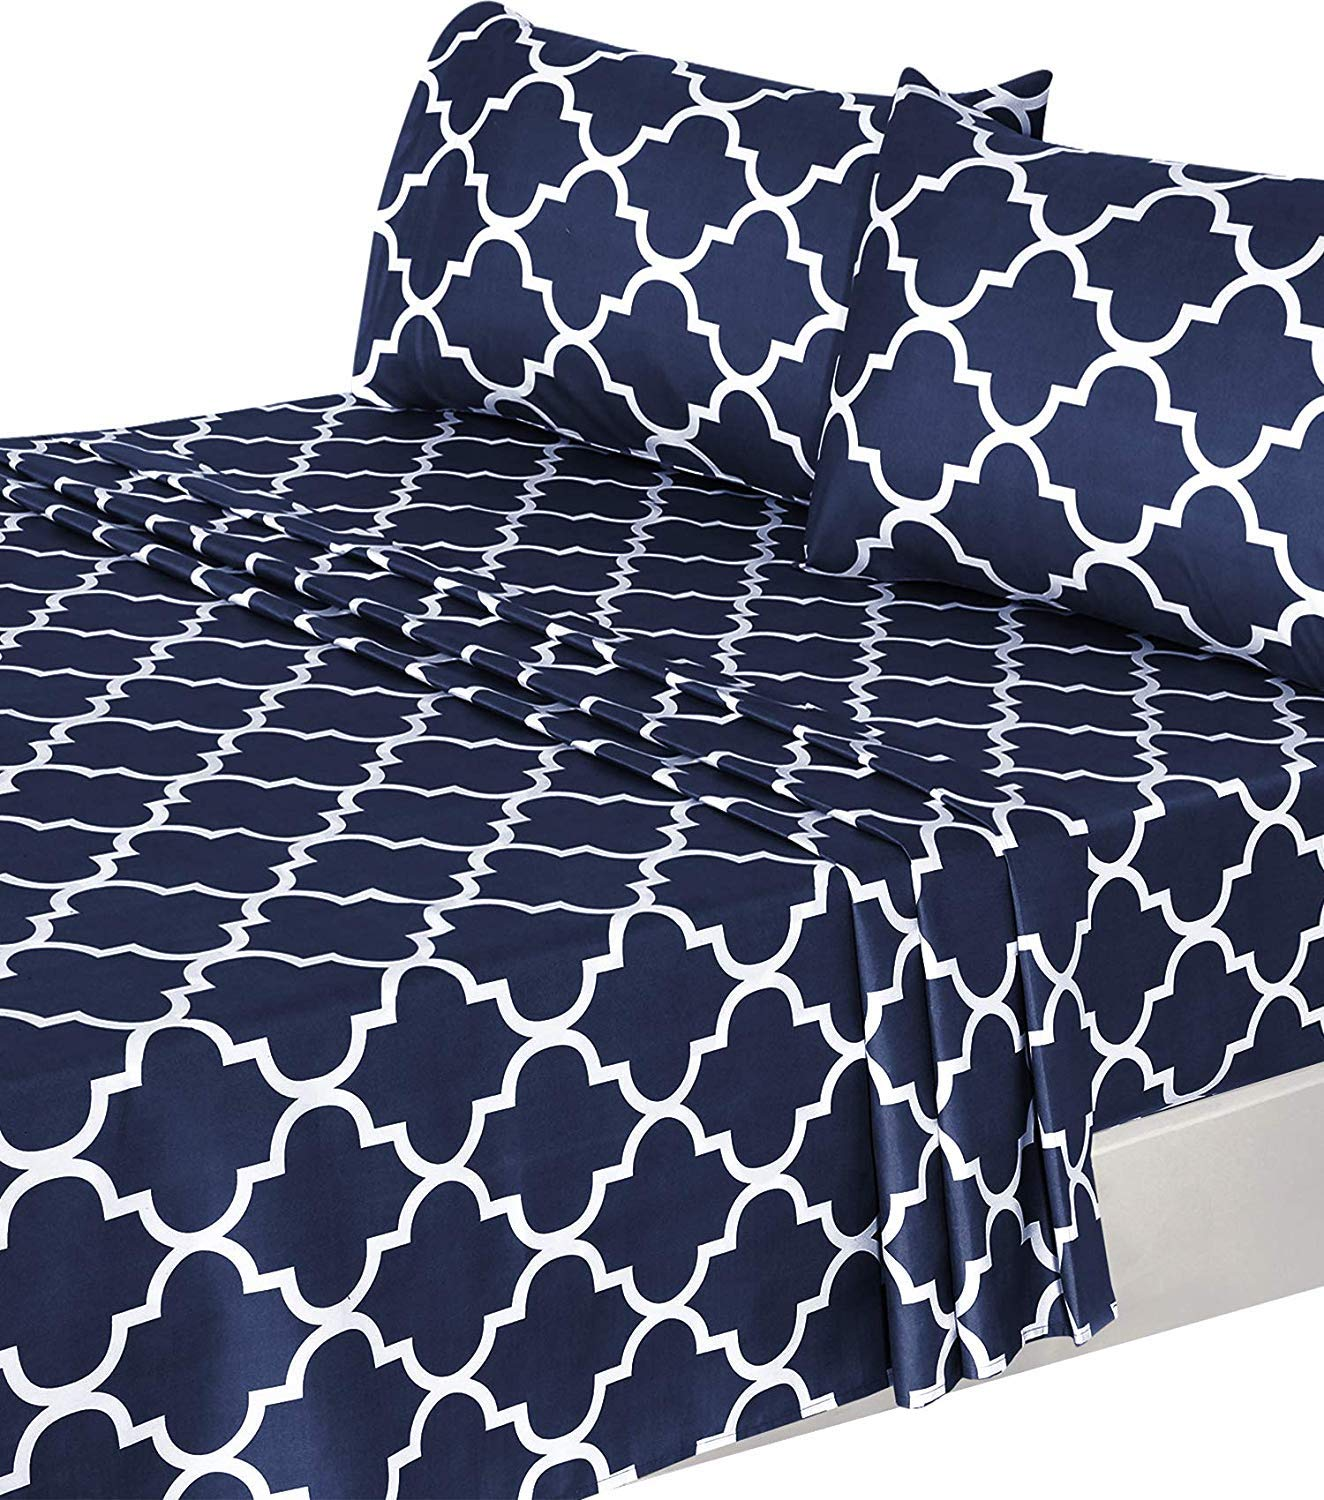 Utopia Bedding 3 Piece Bed Sheet Set (Twin, Navy) - 1 Flat Sheet, 1 Fitted Sheet, and 1 Pillow Case